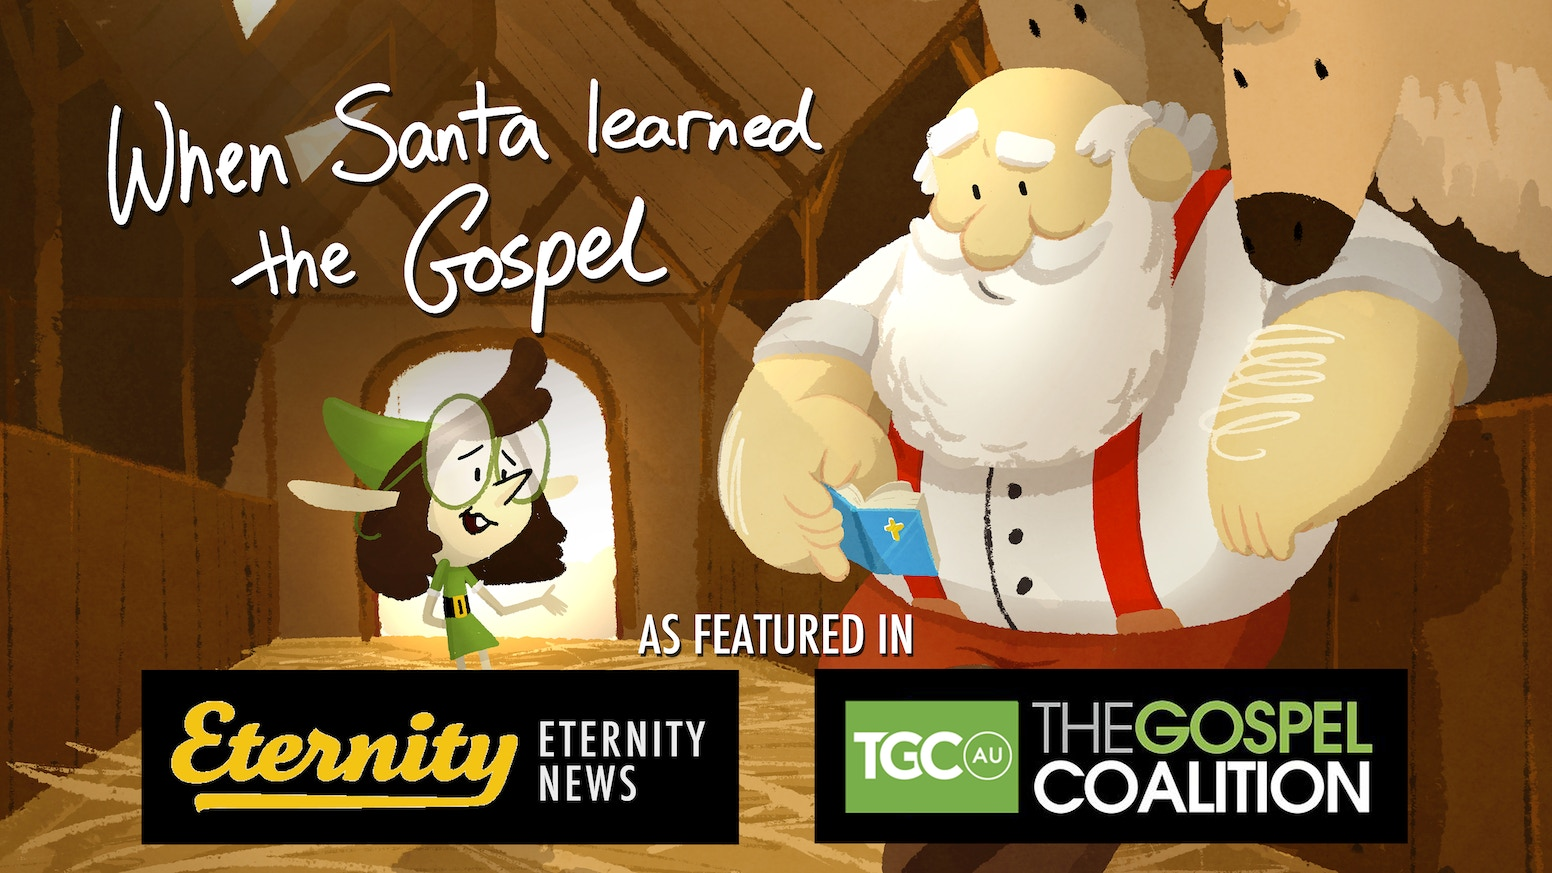 What would Jesus say to Santa? Find out in this beautifully illustrated Christmas book - helping kids and adults reflect on the gospel.